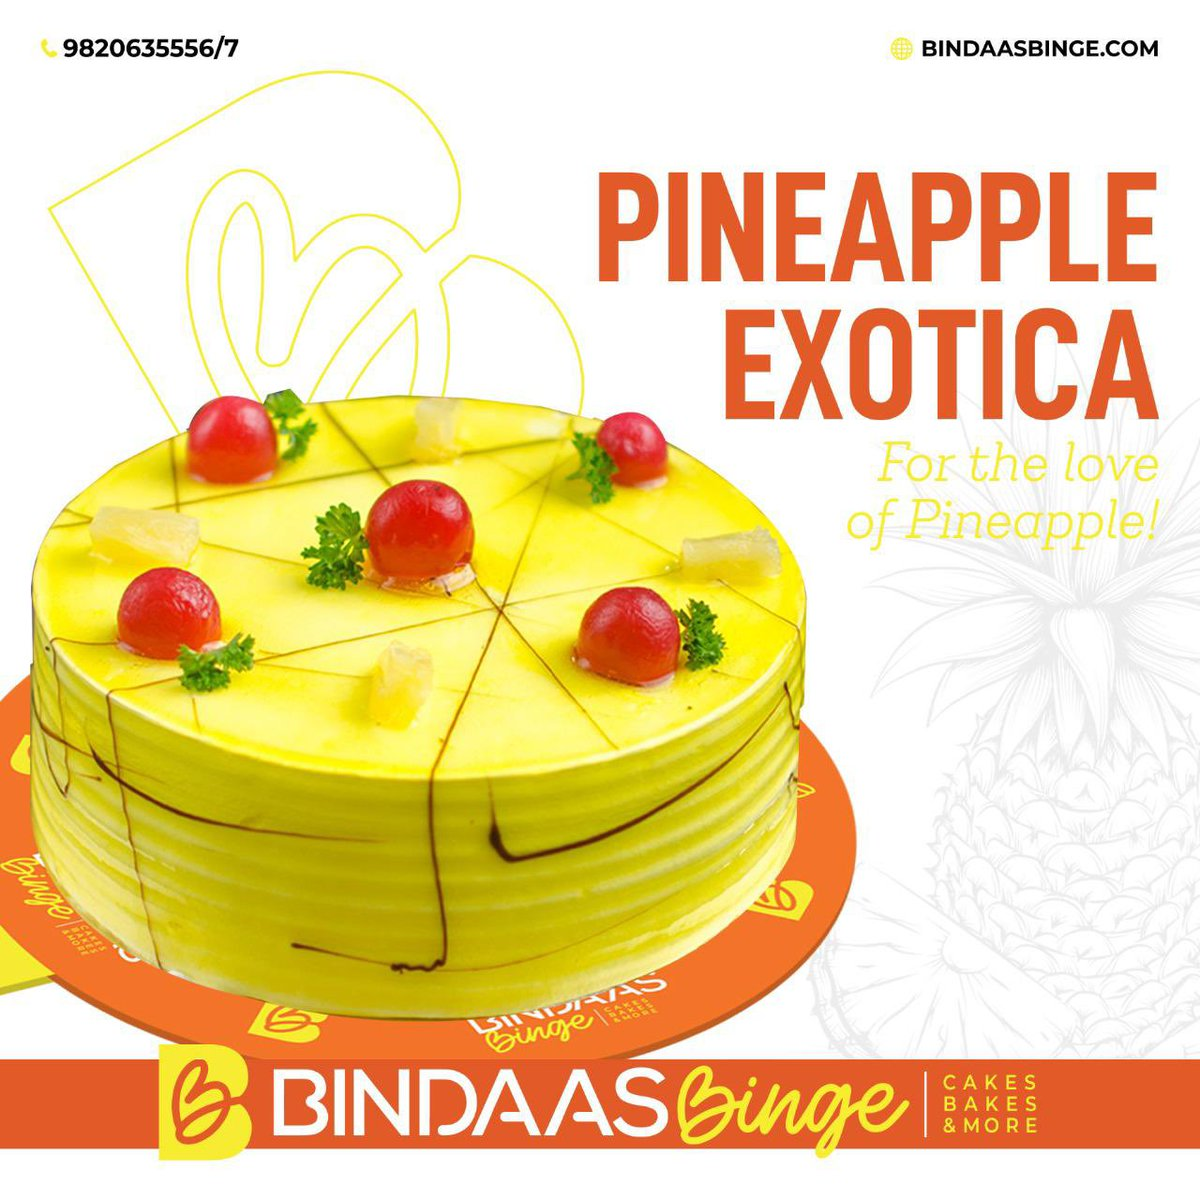 Soft and spongy base infused with the flavours of Pineapple. With every bite you take, there's a burst of flavours in your mouth which is sooo droolworthy. #birthday # birthdaycake #pineapplecakes #pineapplecakes🍍 #cake #cakes #pineapple #loveforsweet #sweet #bindaasbinge https://t.co/JHOb48TwLn